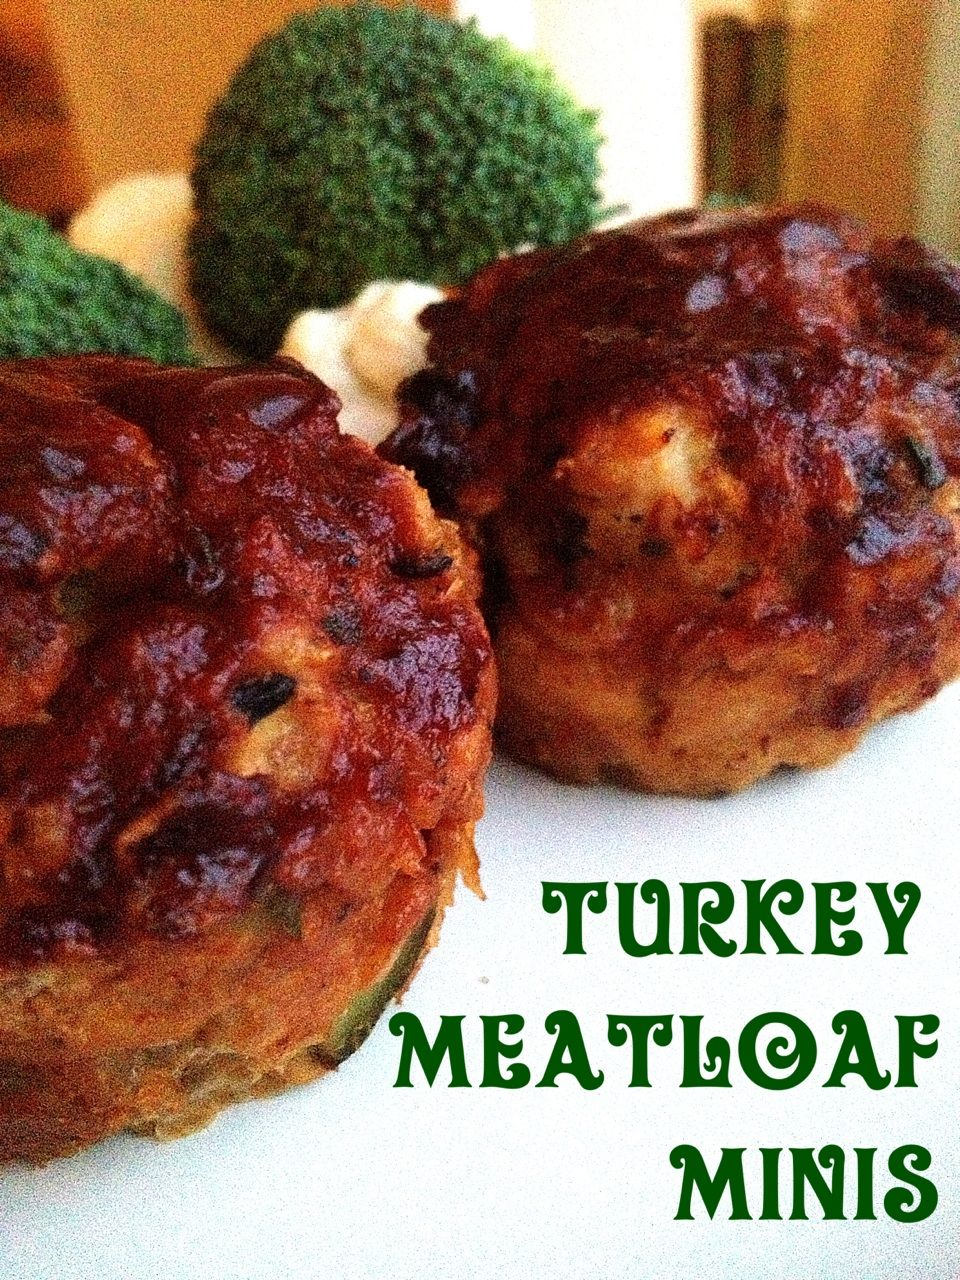 A Healthy Makeover: Turkey Meatloaf Minis